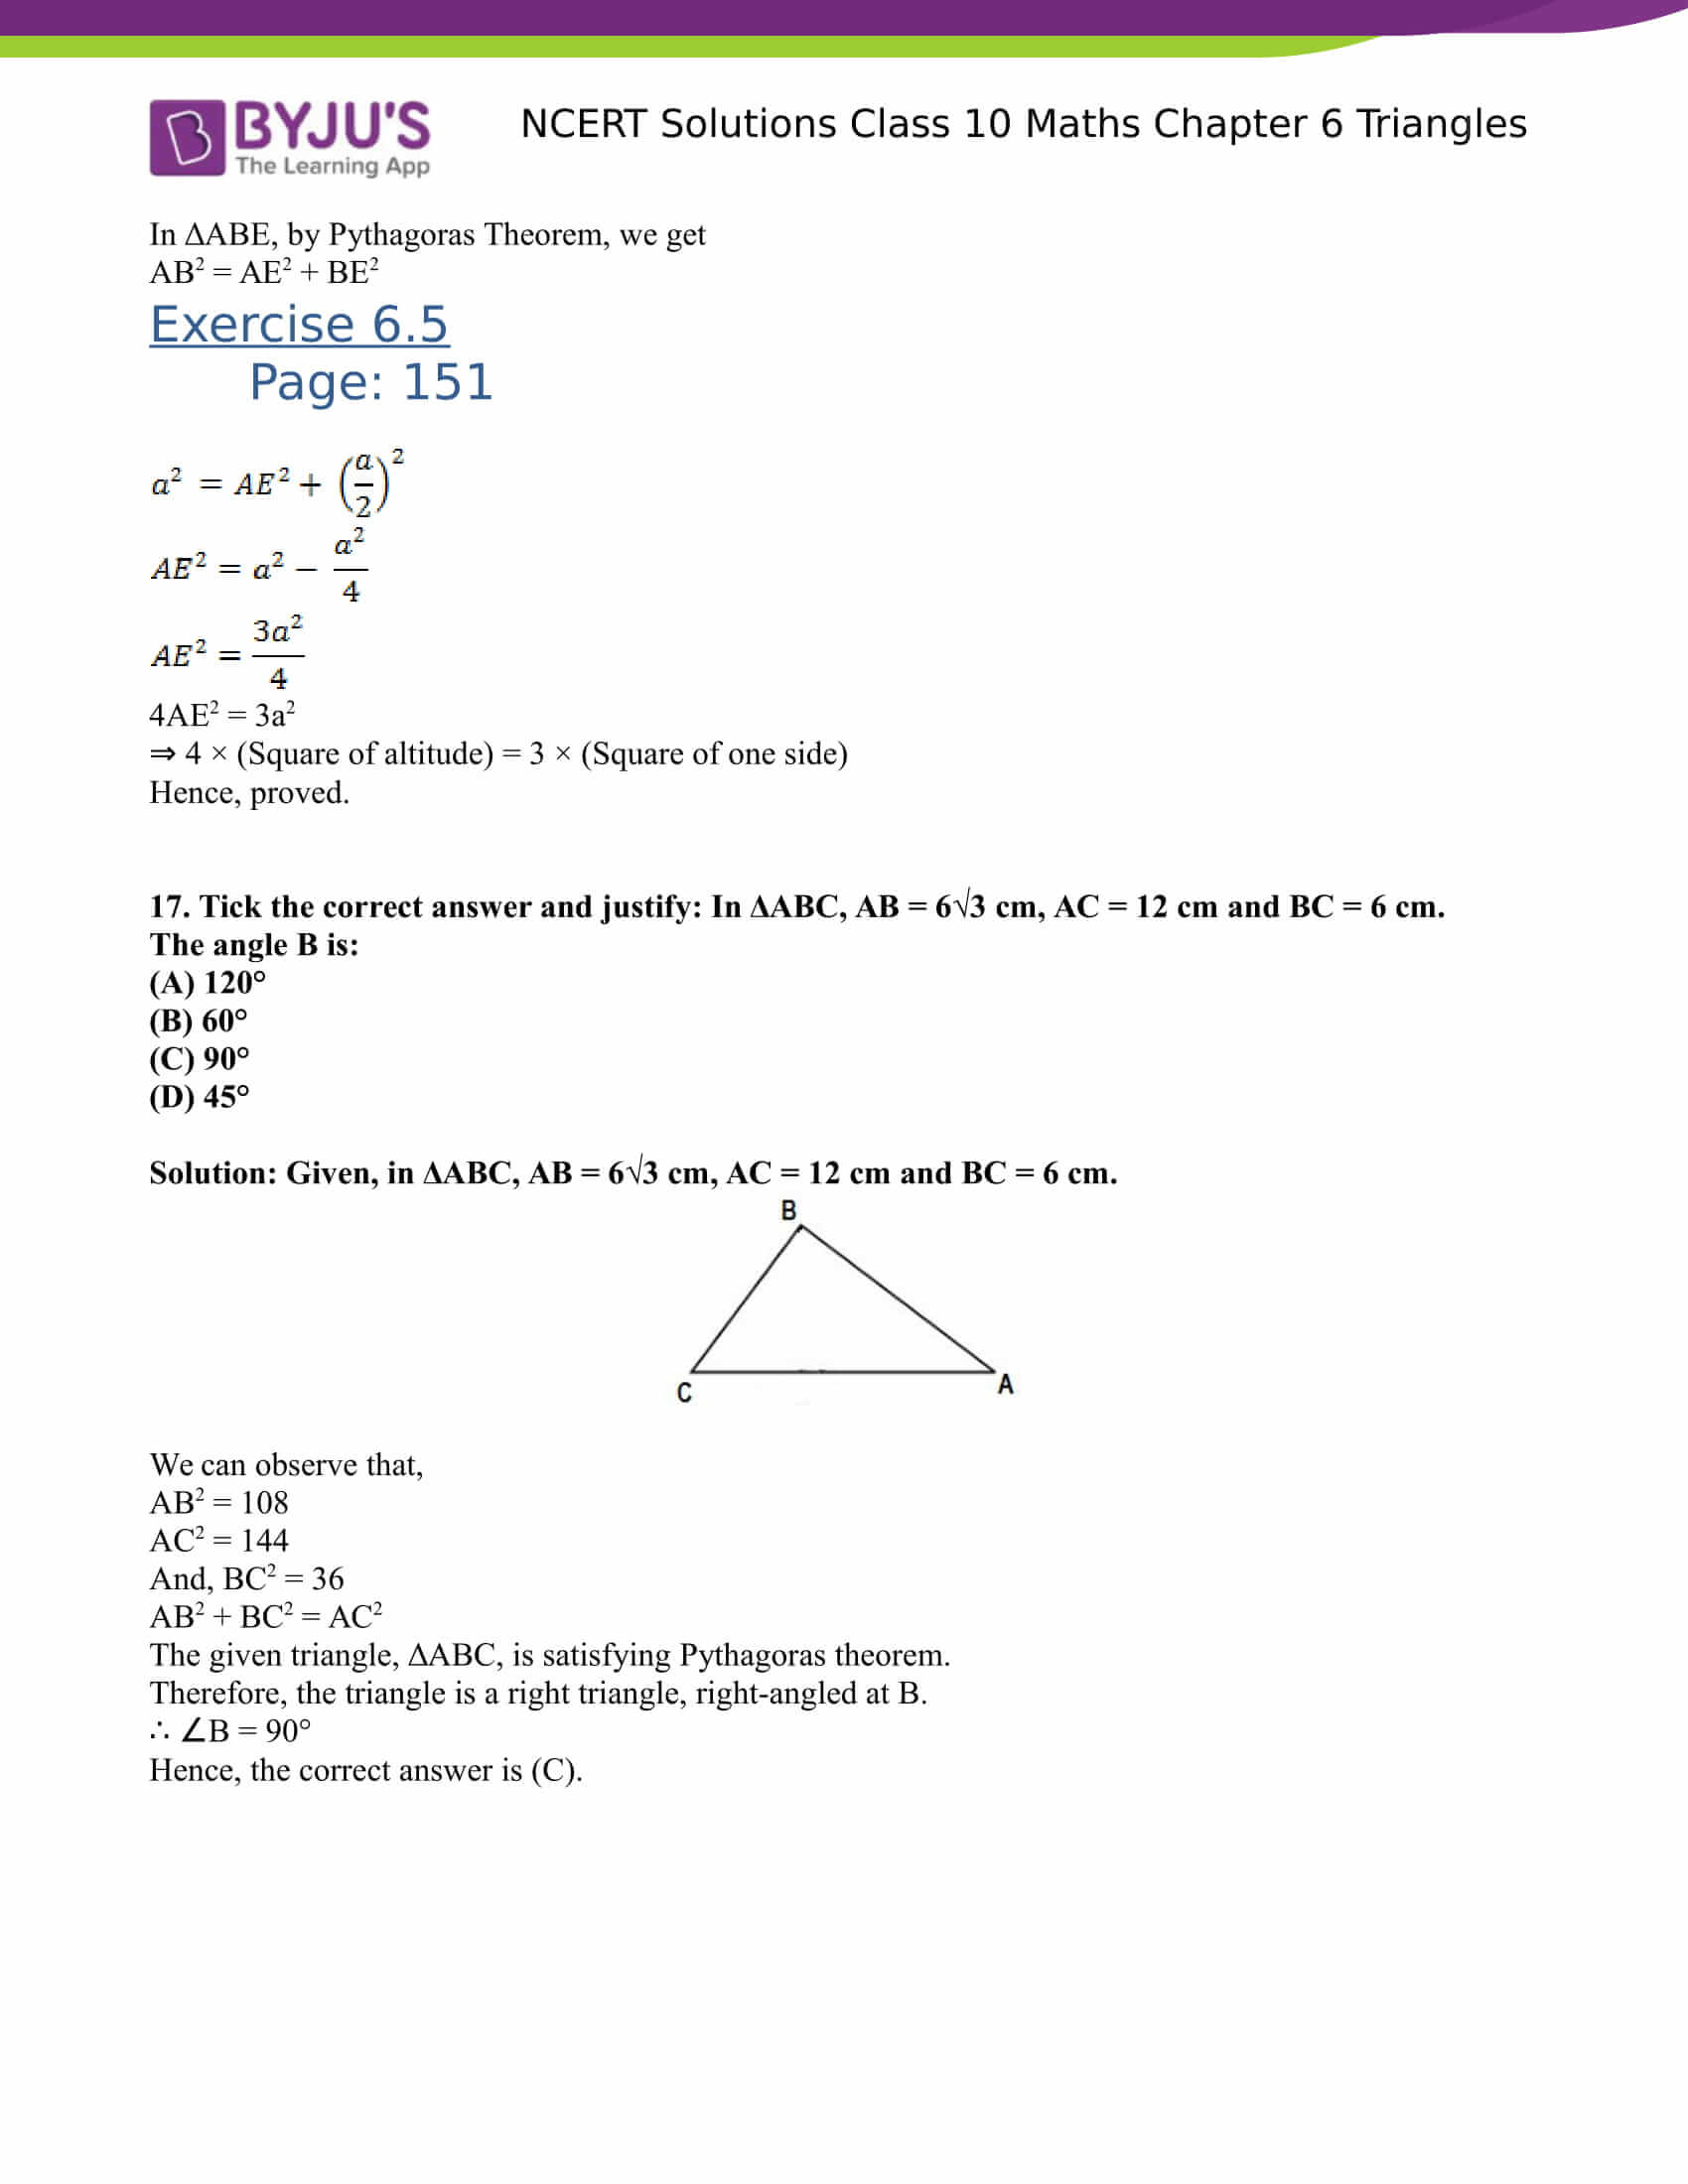 NCERT Solutions for class 10 Maths Chapter 6 Triangles Part 45